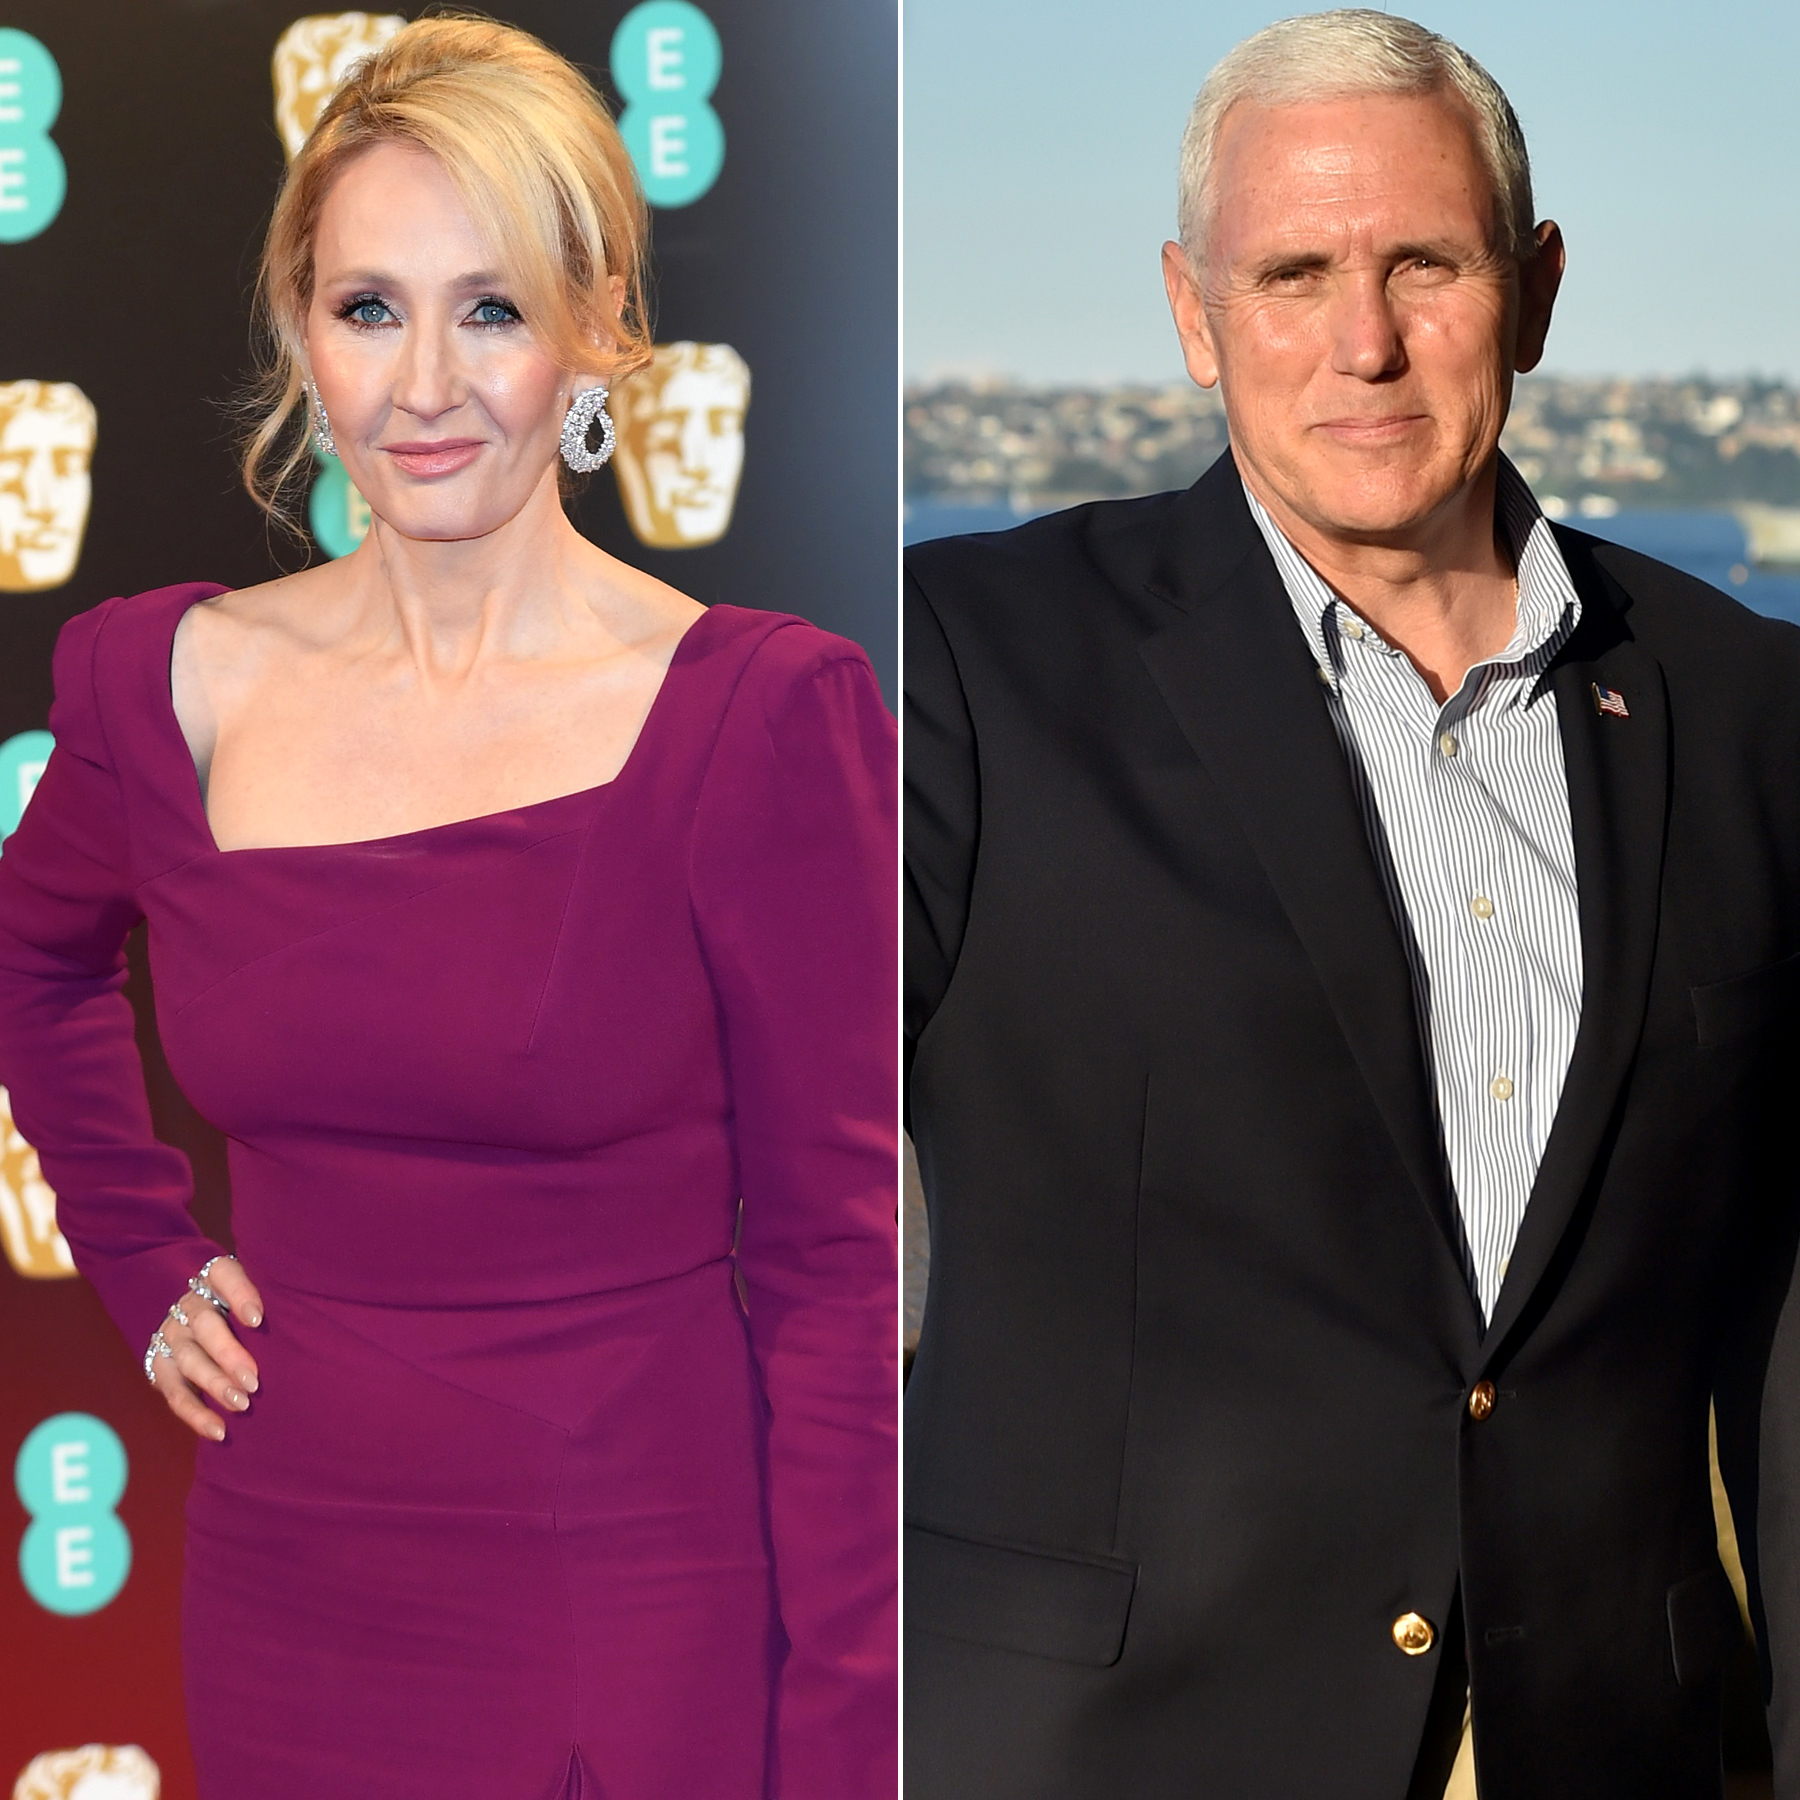 JK Rowling and Mike Pence